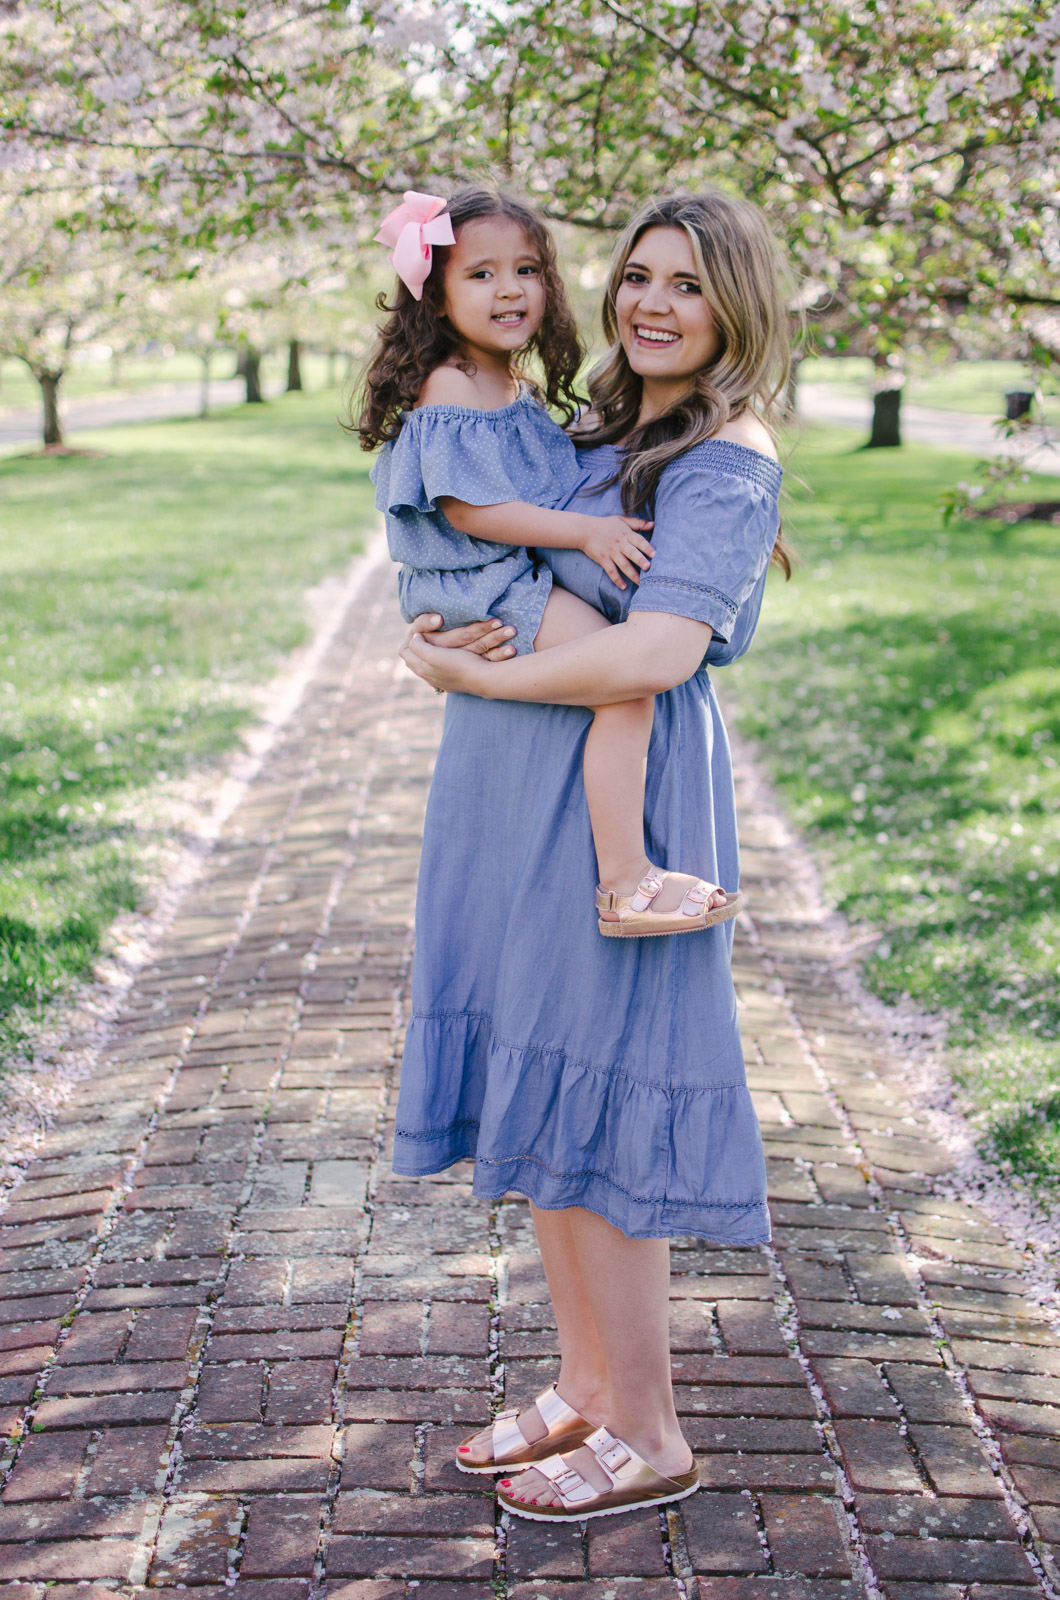 mommy and me spring matching outfits - mother daughter chambray dresses | For more mommy and me outfits, see bylaurenm.com!